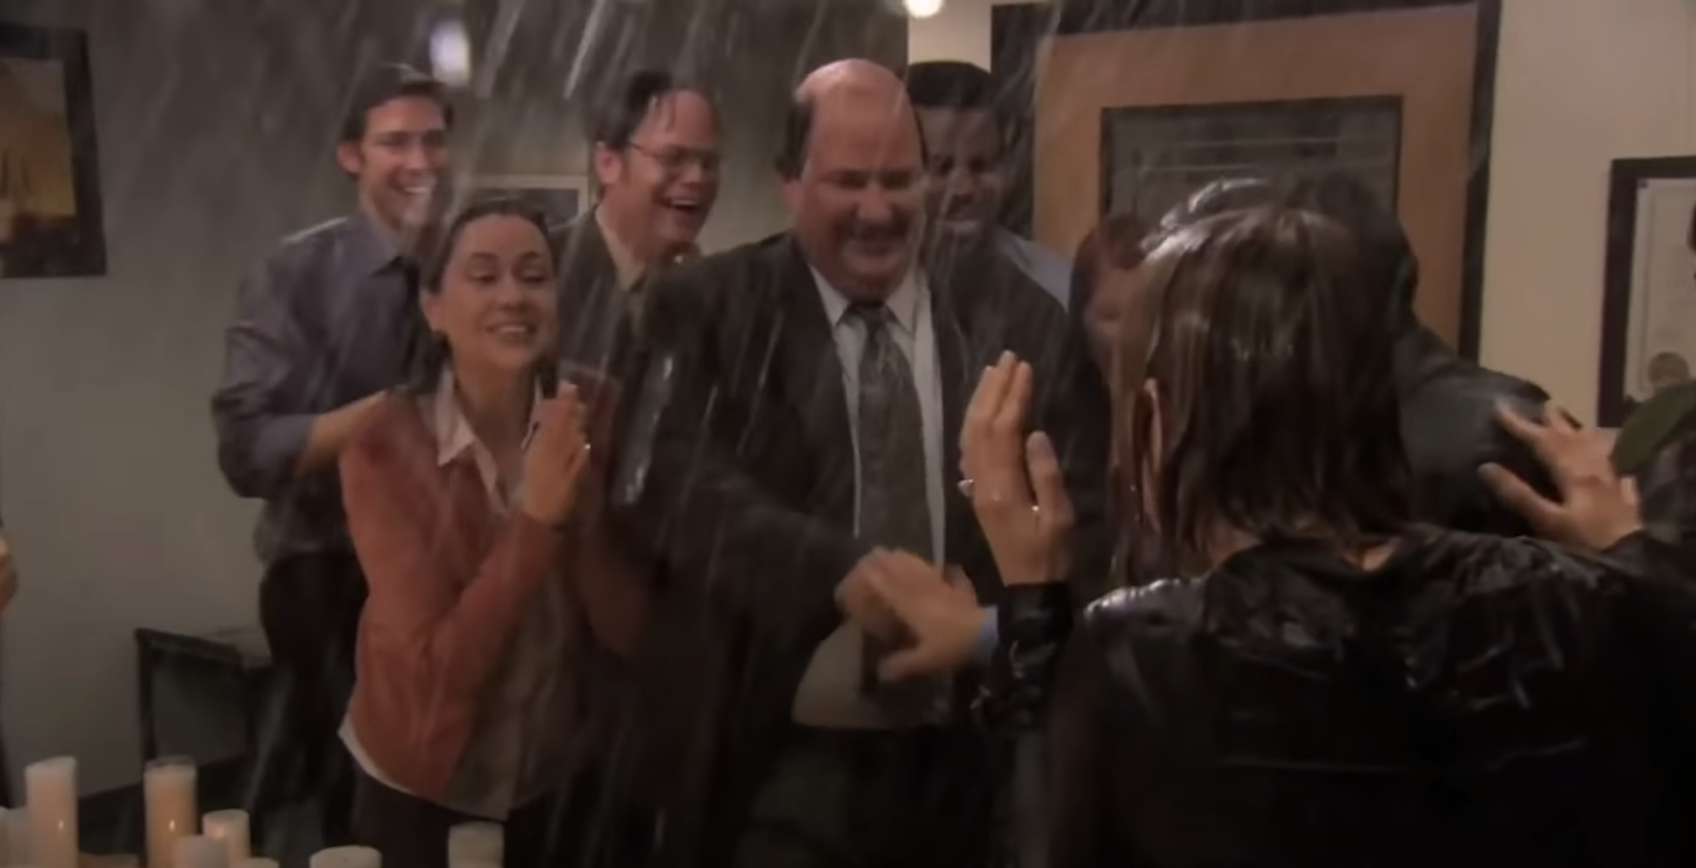 Soaked but excited Dunder Mifflin employees cheer to celebrate the proposal